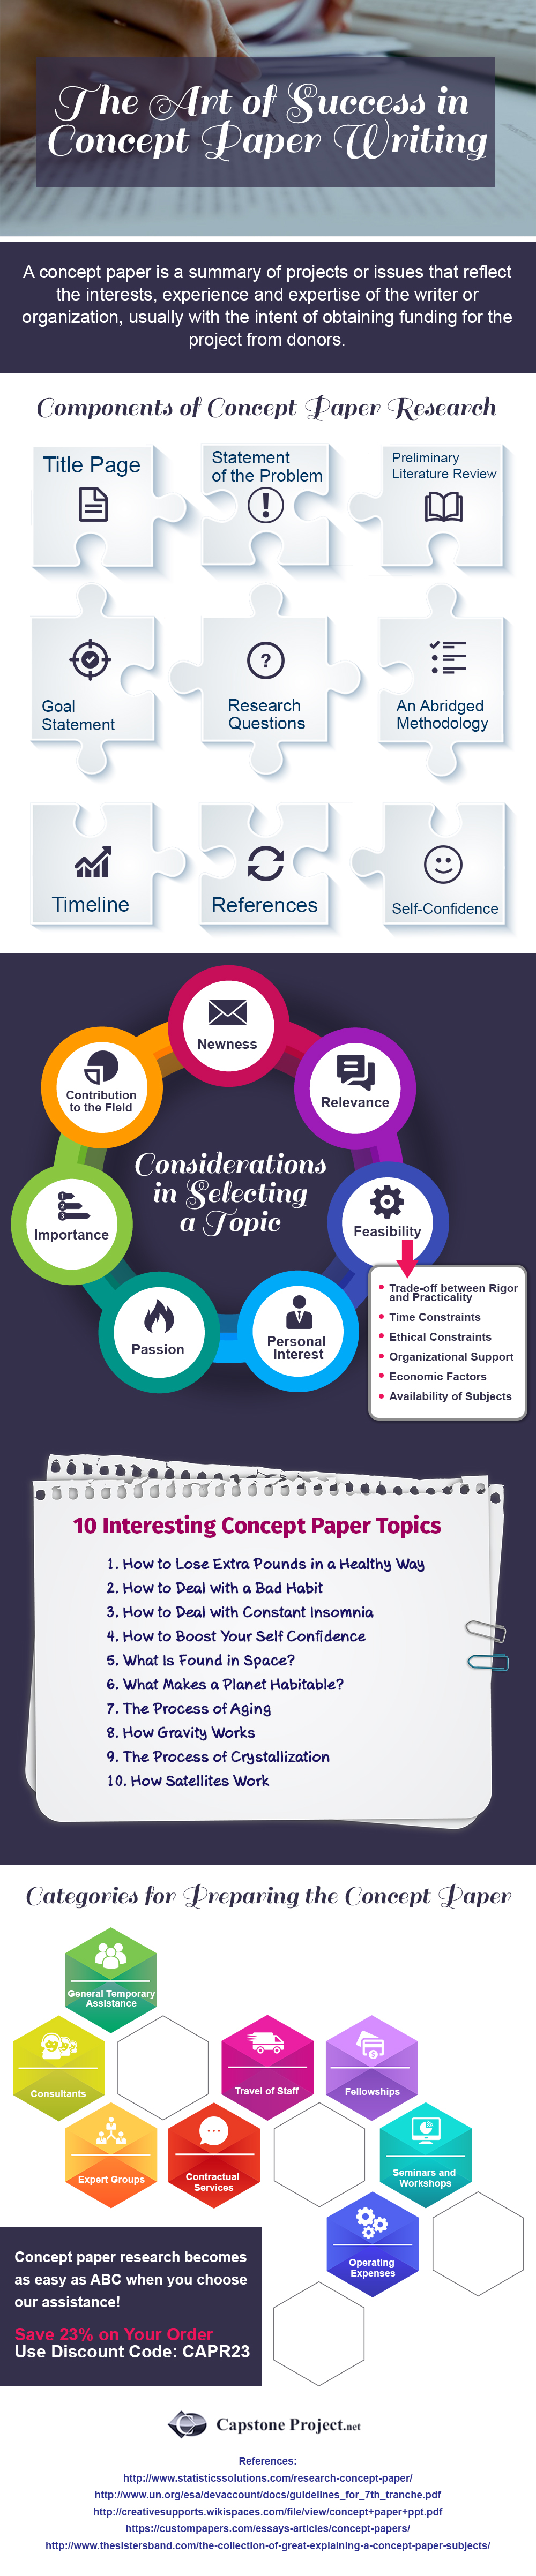 %d1%81oncept-paper-writing